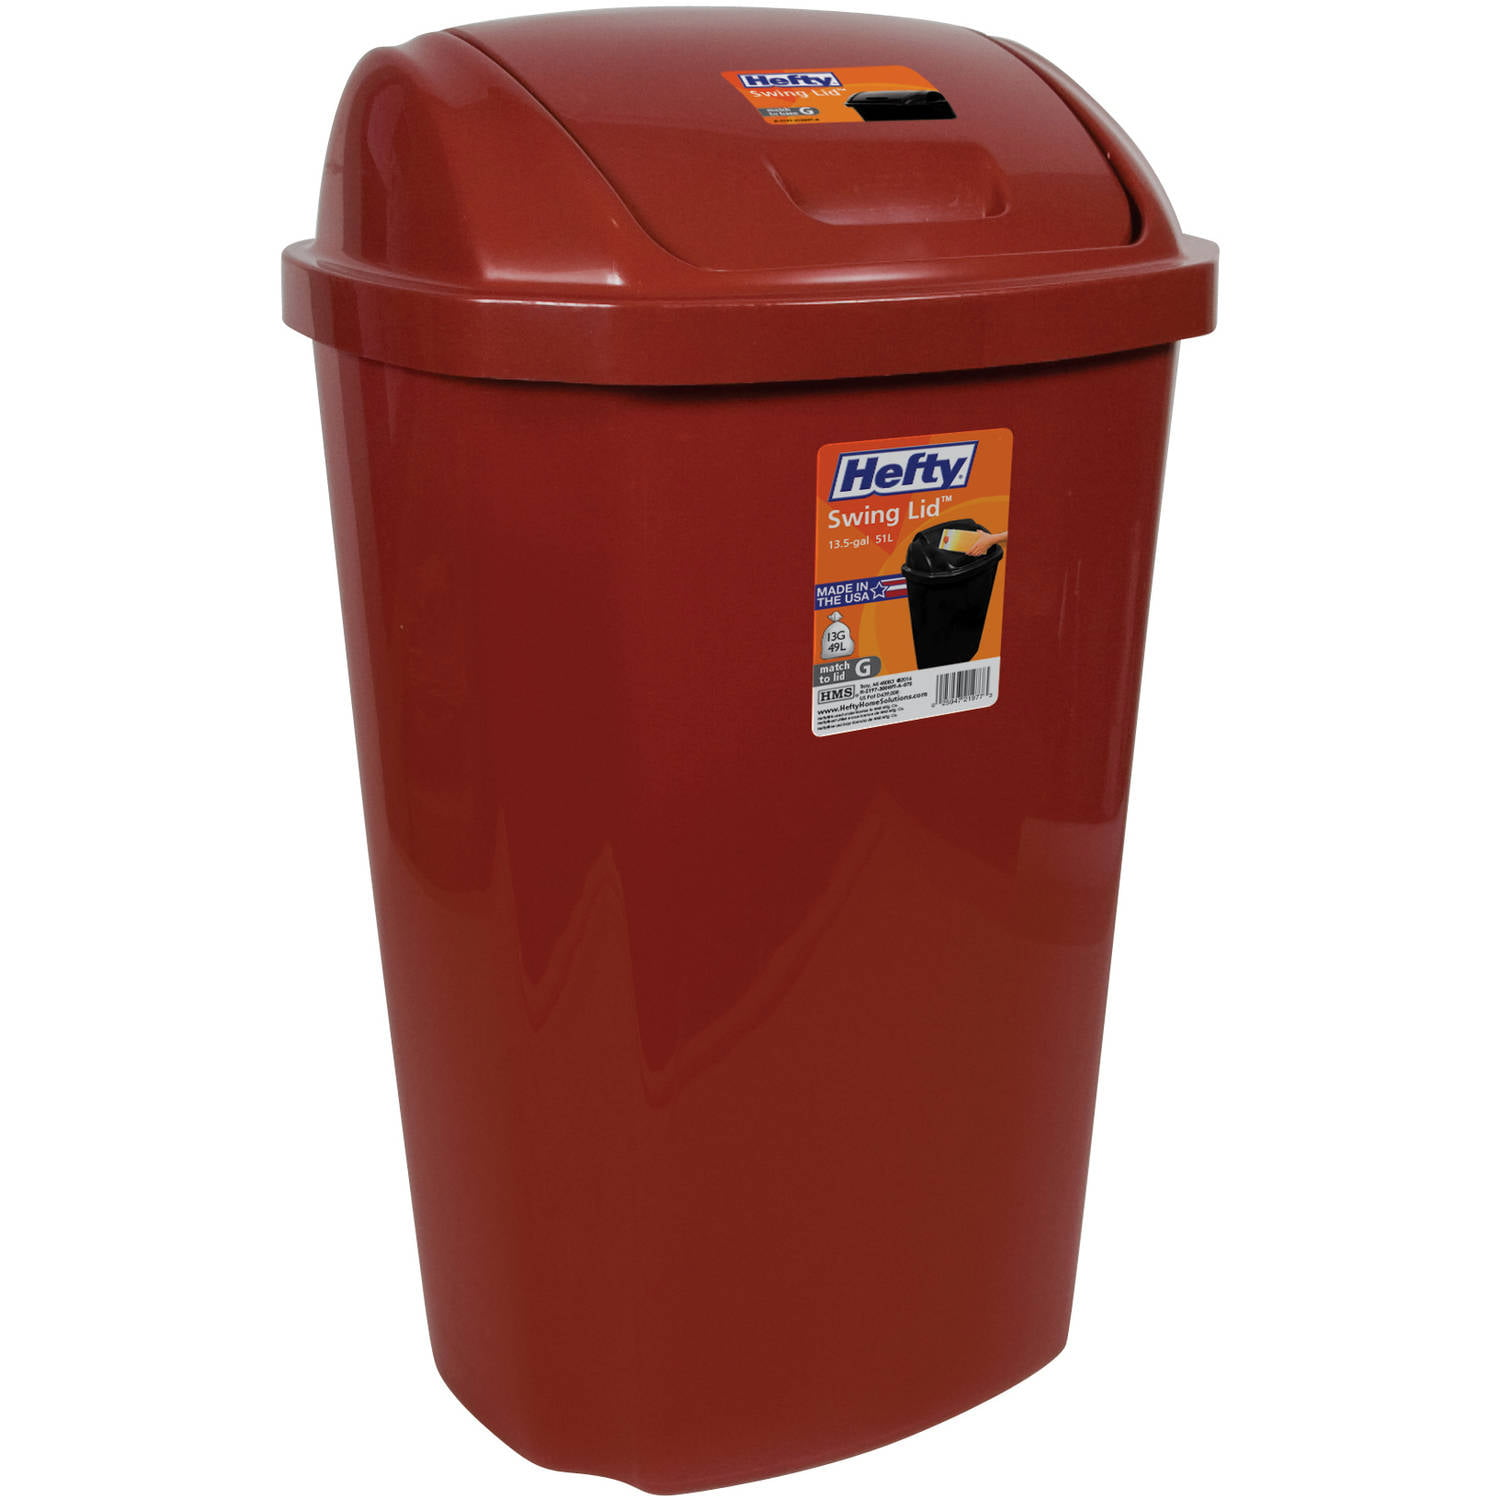 Hefty Swing-Lid 13.5-Gallon Trash Can, Multiple Colors - Walmart.com